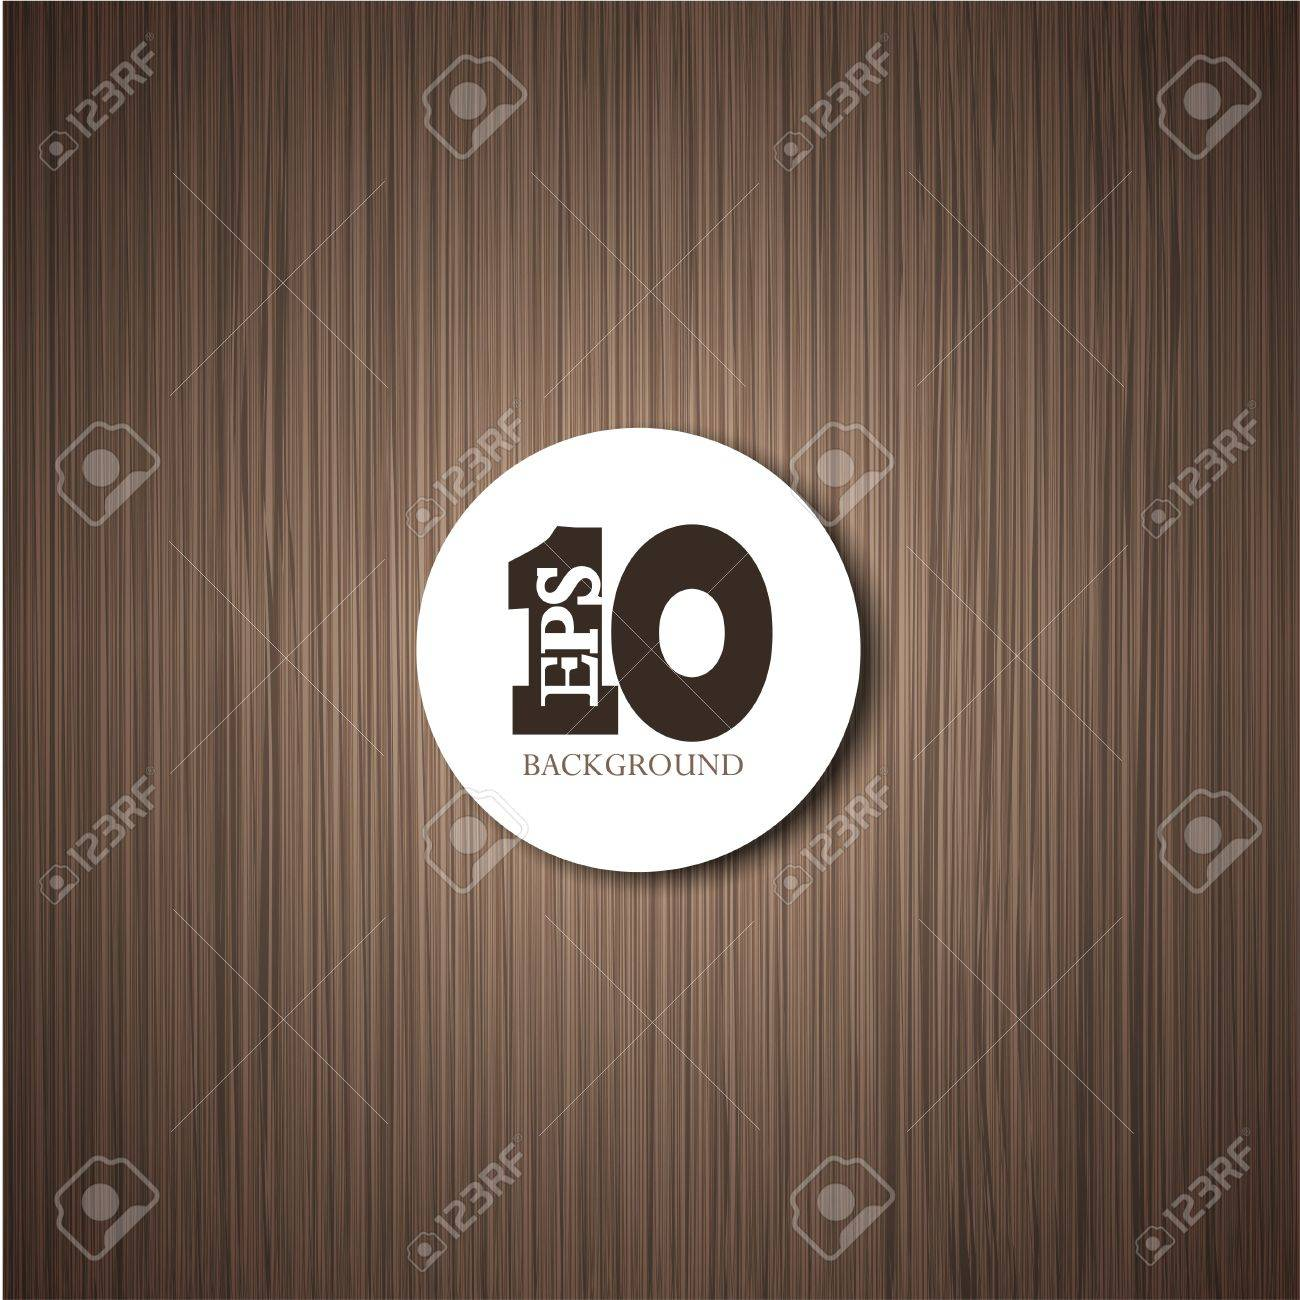 Vector wooden background with place for your text. Stock Vector - 14912682